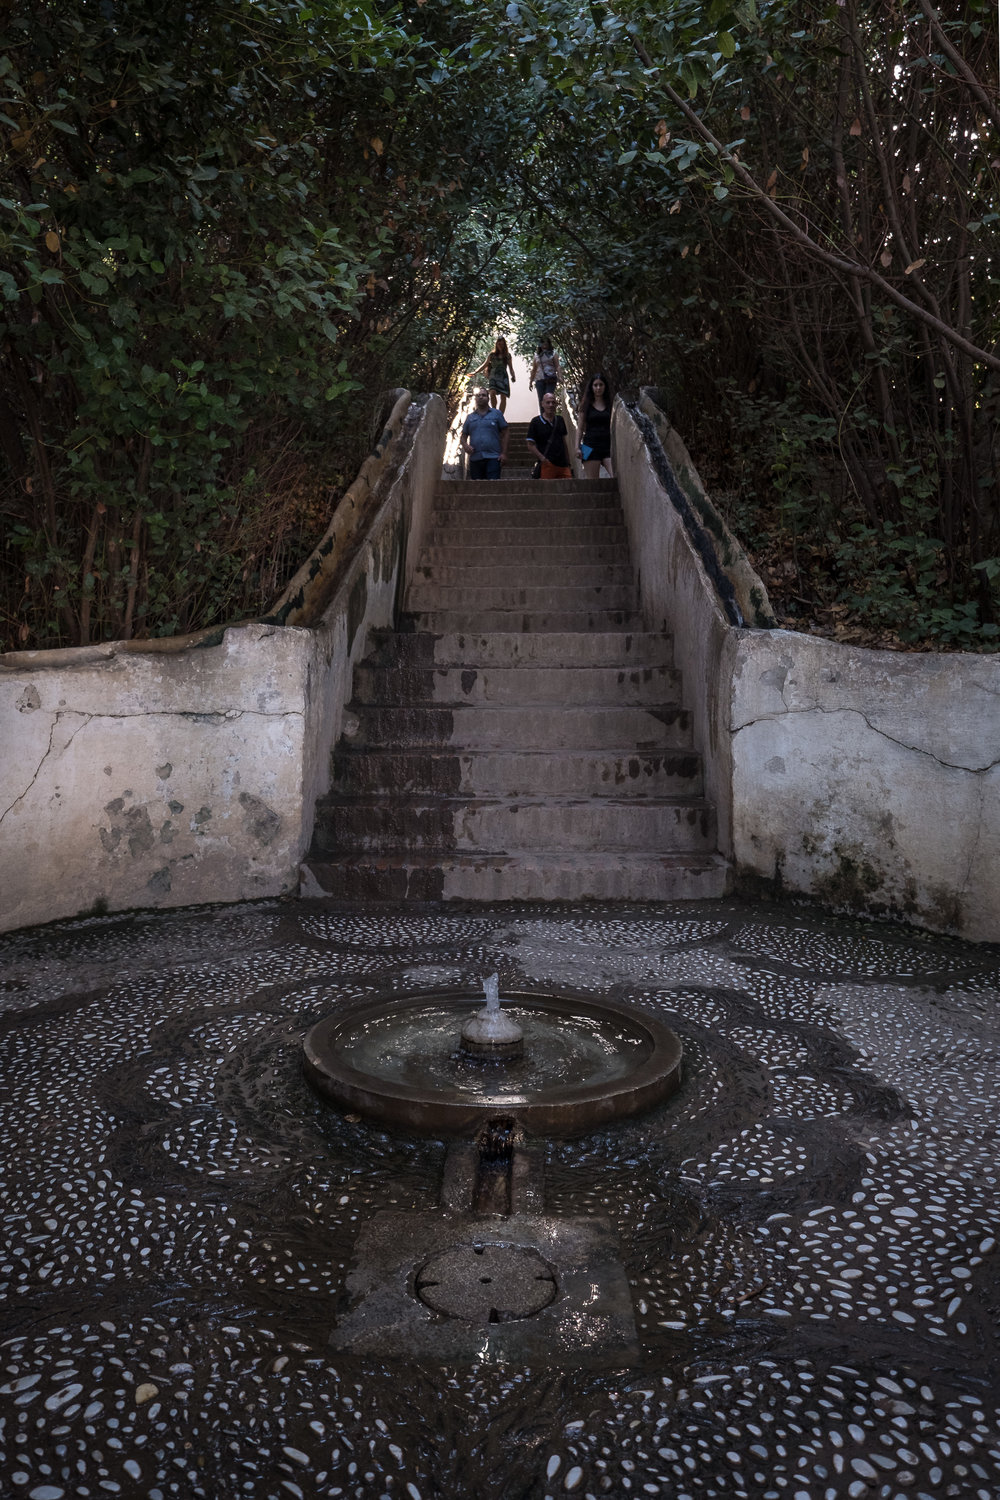 water stairway (so tranquil!)